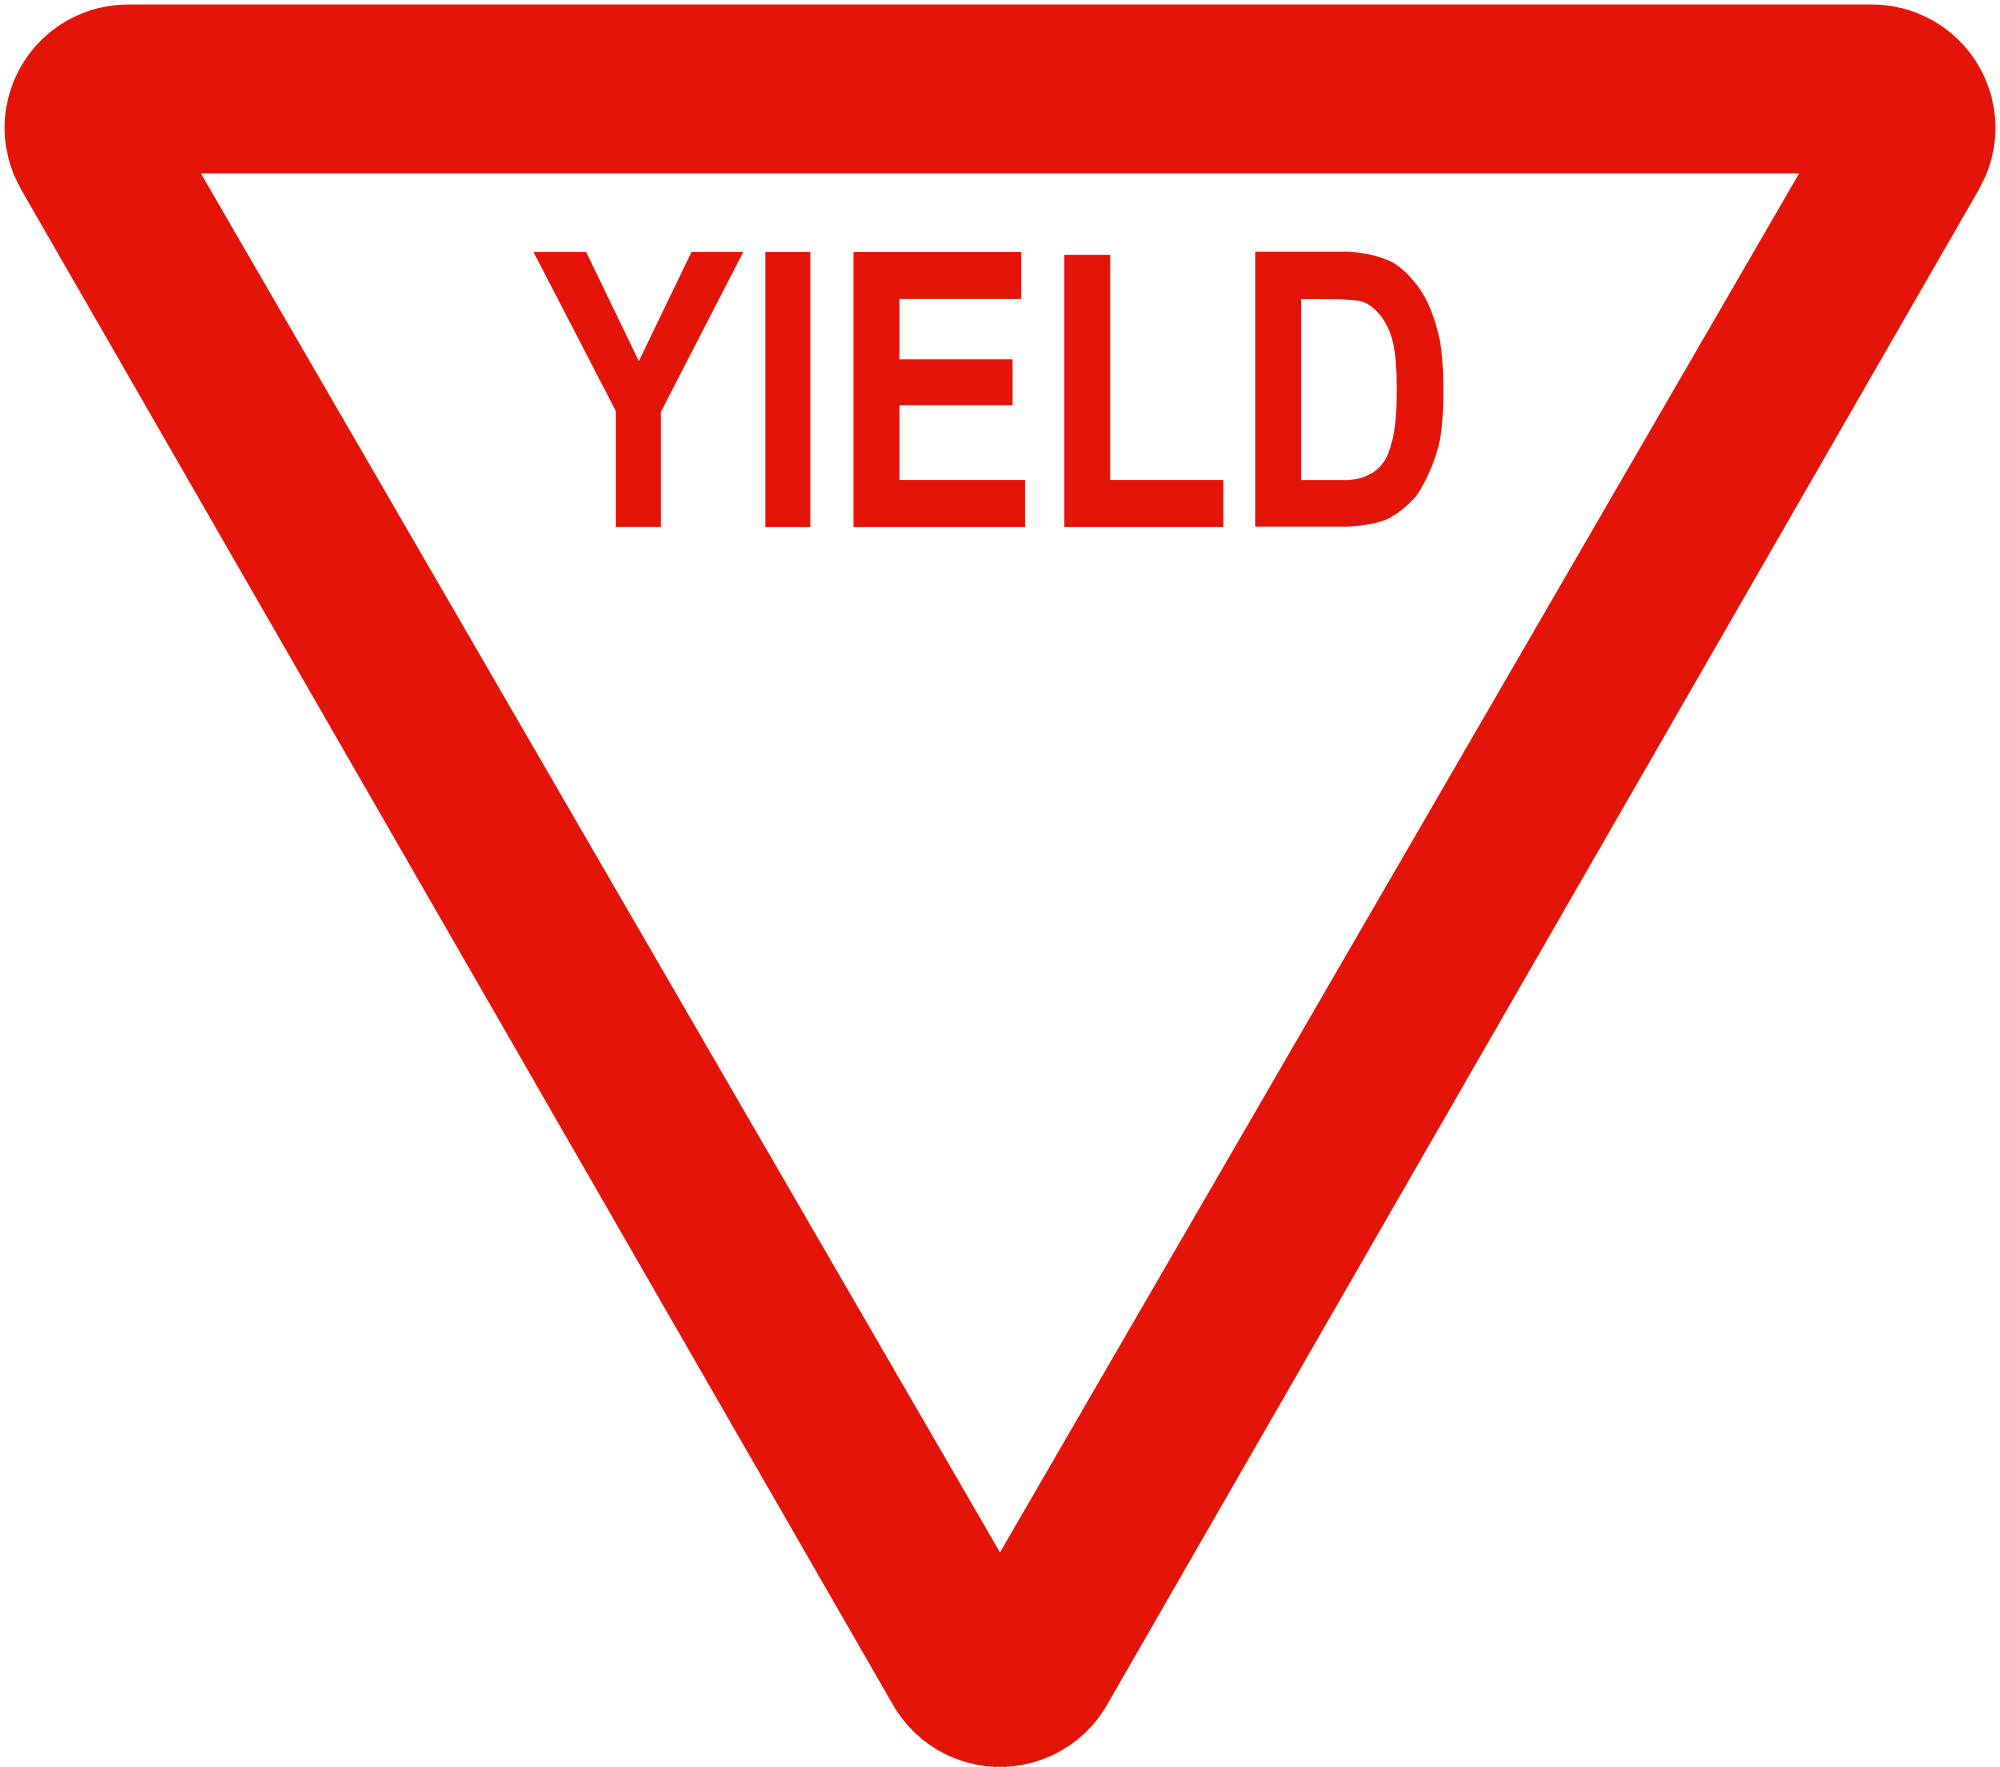 Yield sign png. File liberian road signs